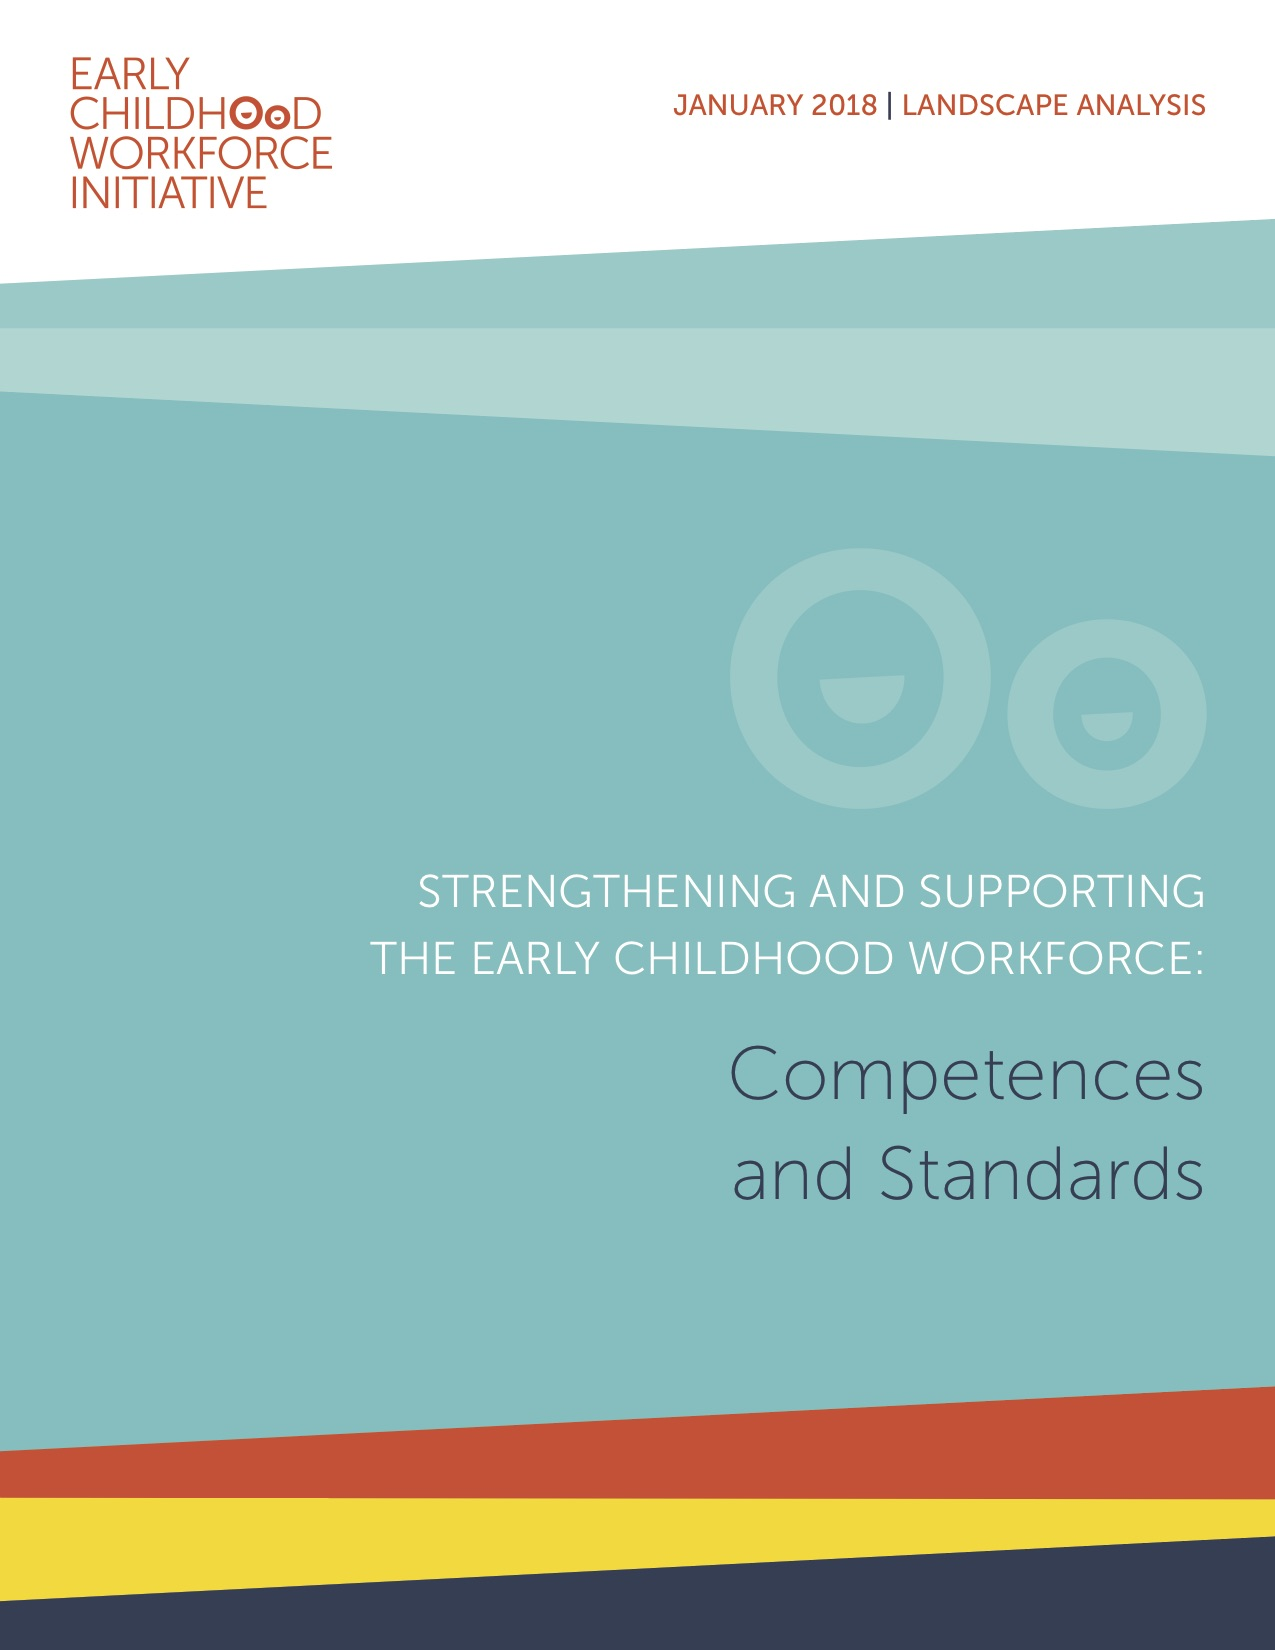 Competences and Standards